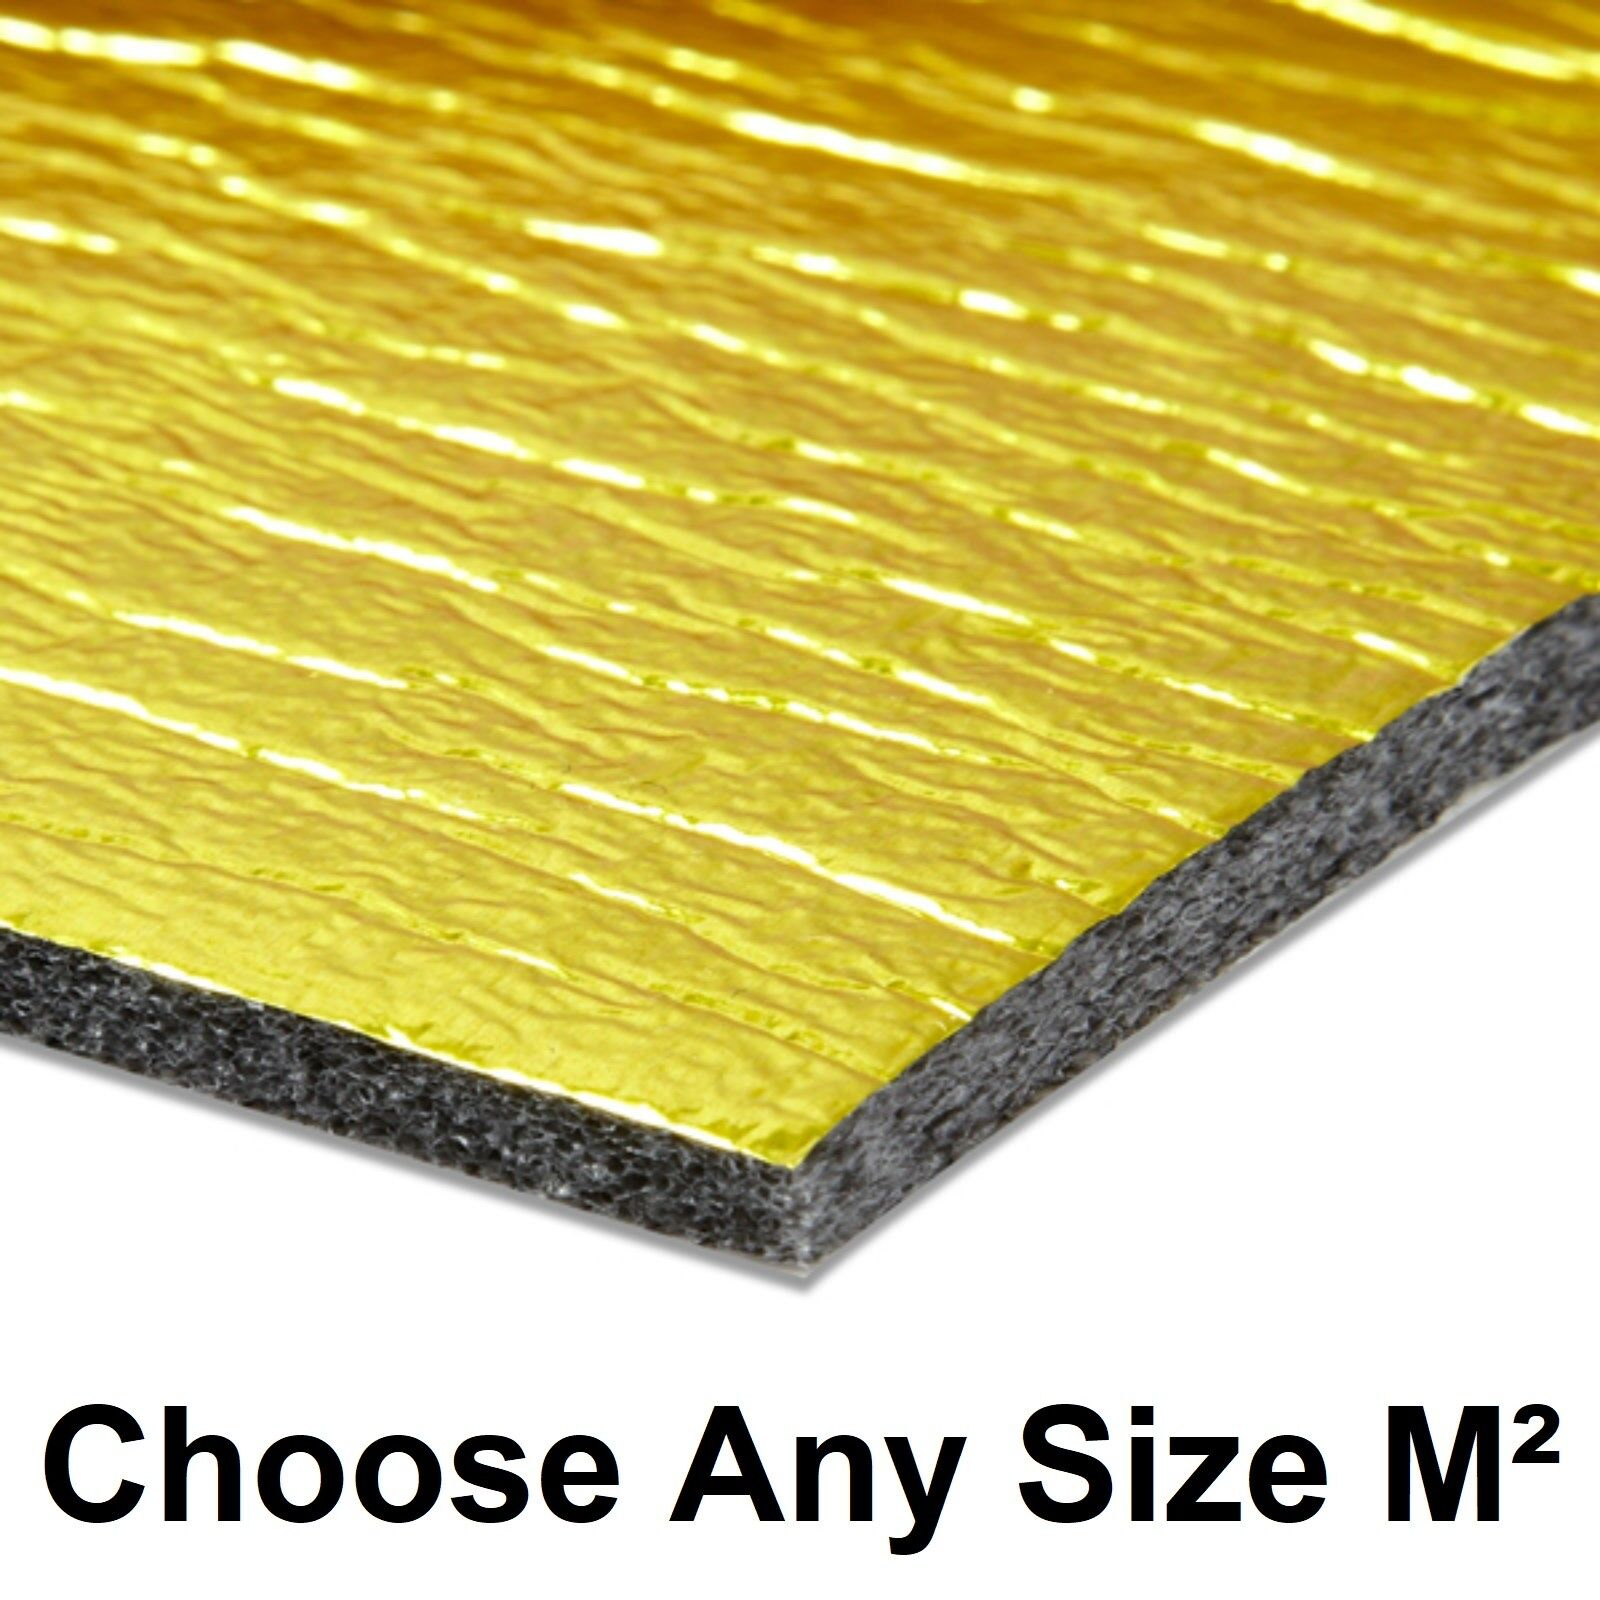 Royale Sonic 15m2 Gold 5mm Laminate Or, 5mm Underlay For Laminate Flooring